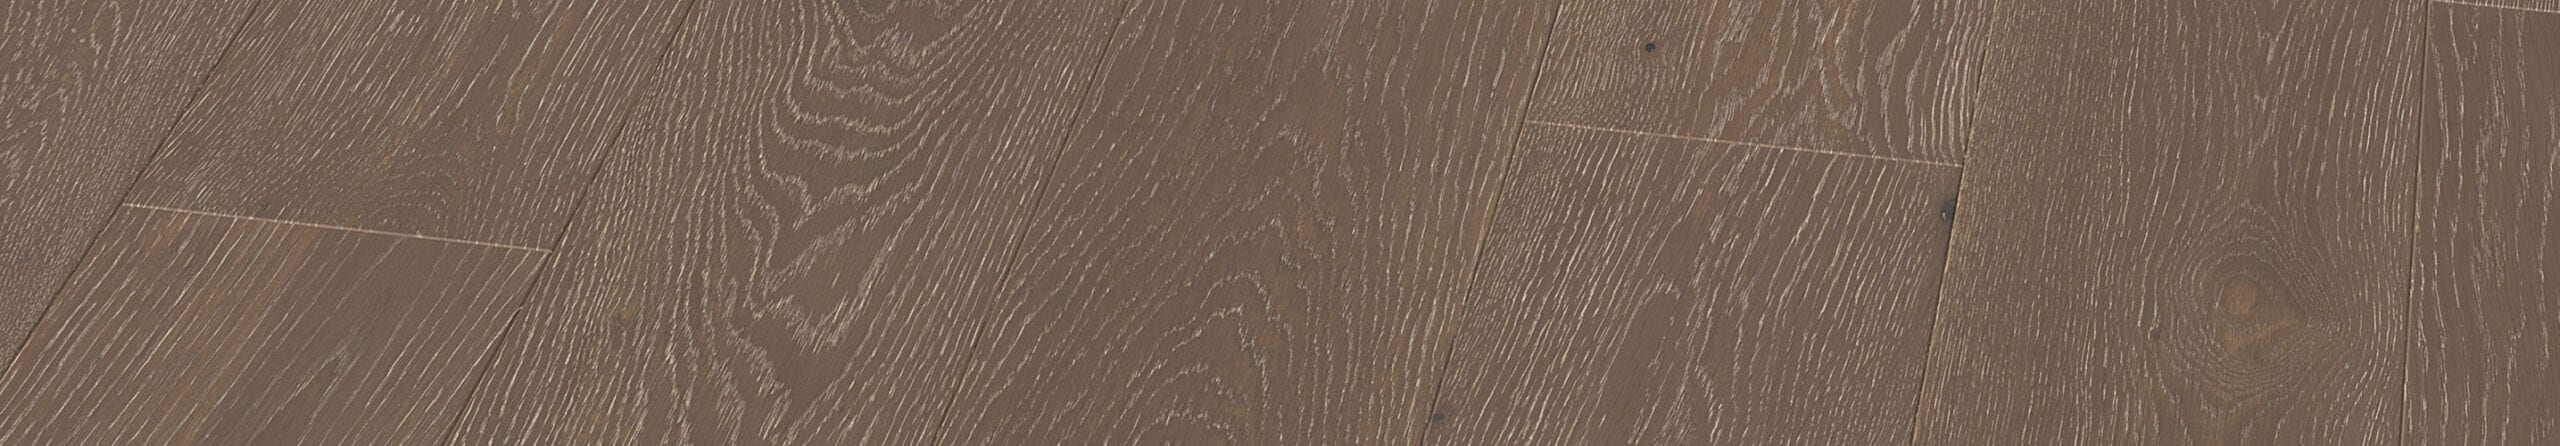 Byzantium-Colors Collection-European Oak Floors-banner